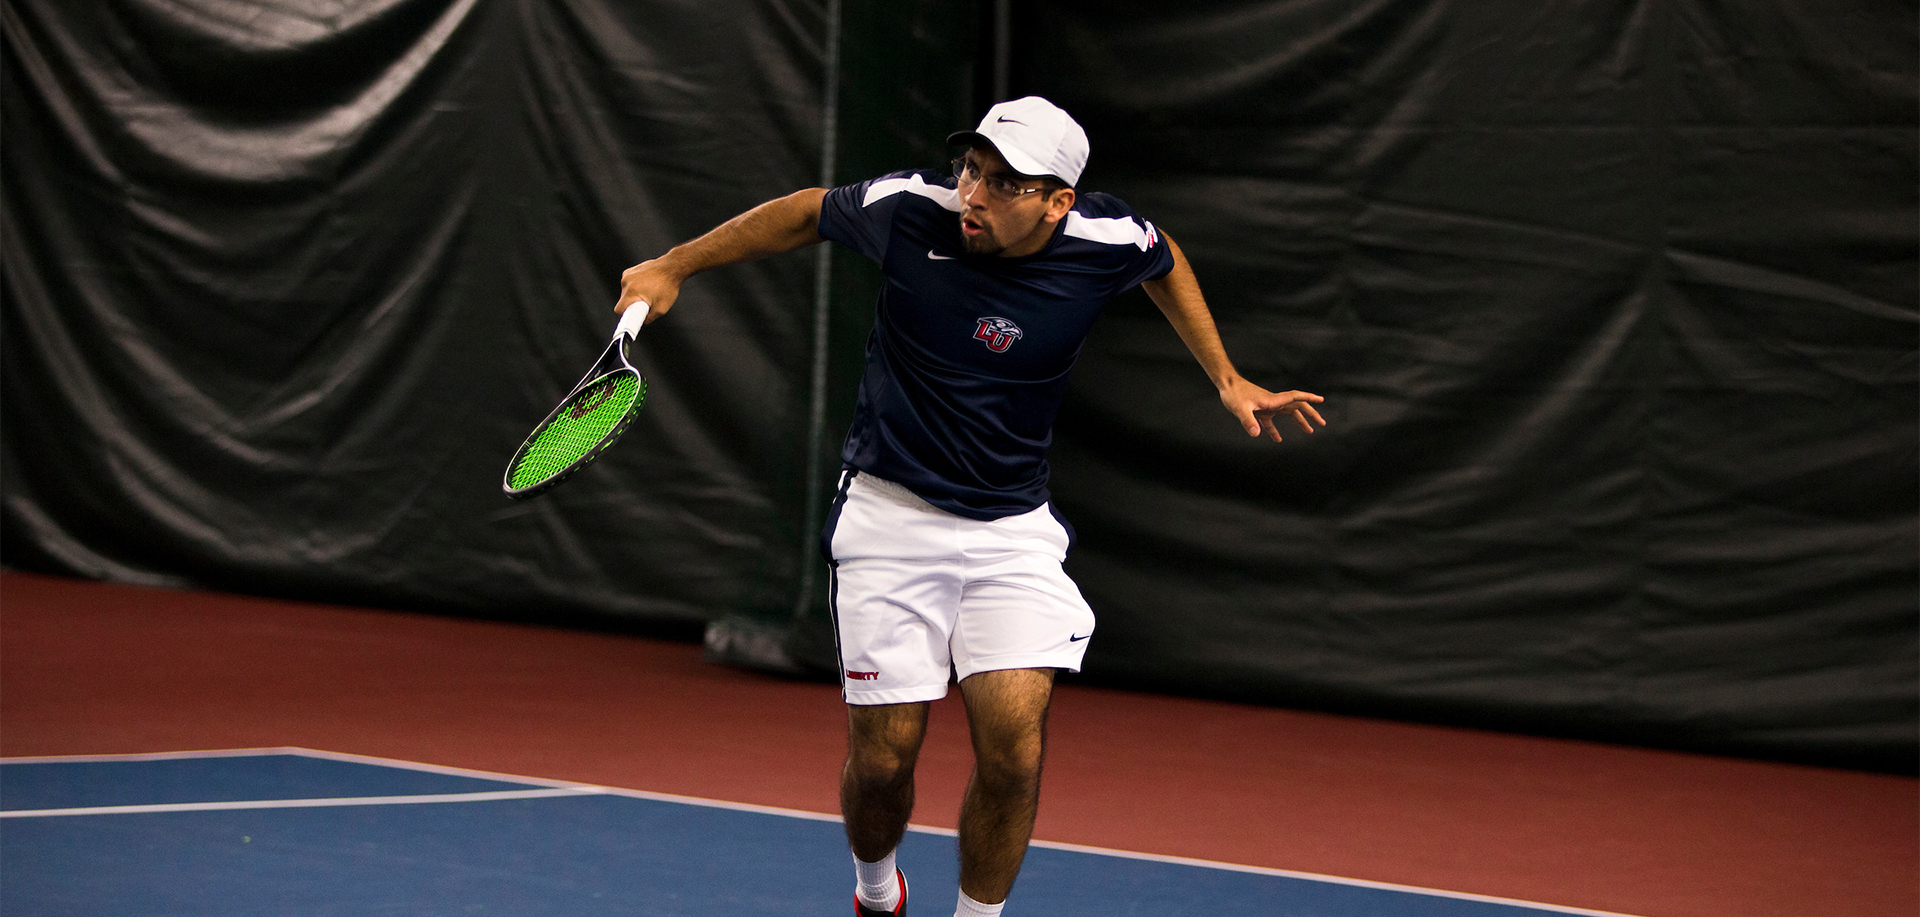 The Flames saw their three-match winning streak halted at East Carolina, Wednesday.